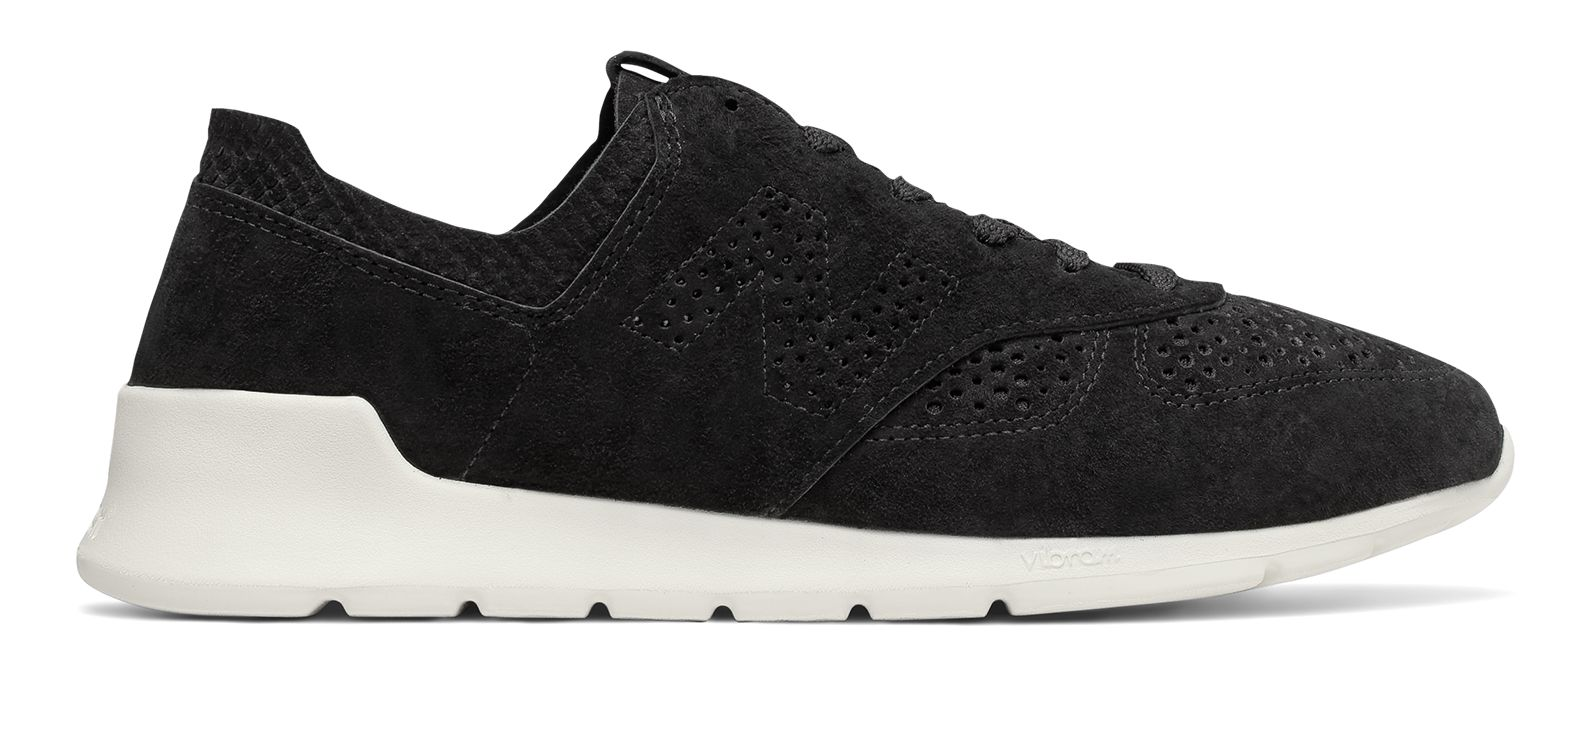 NB 1978 Made in the USA, Black